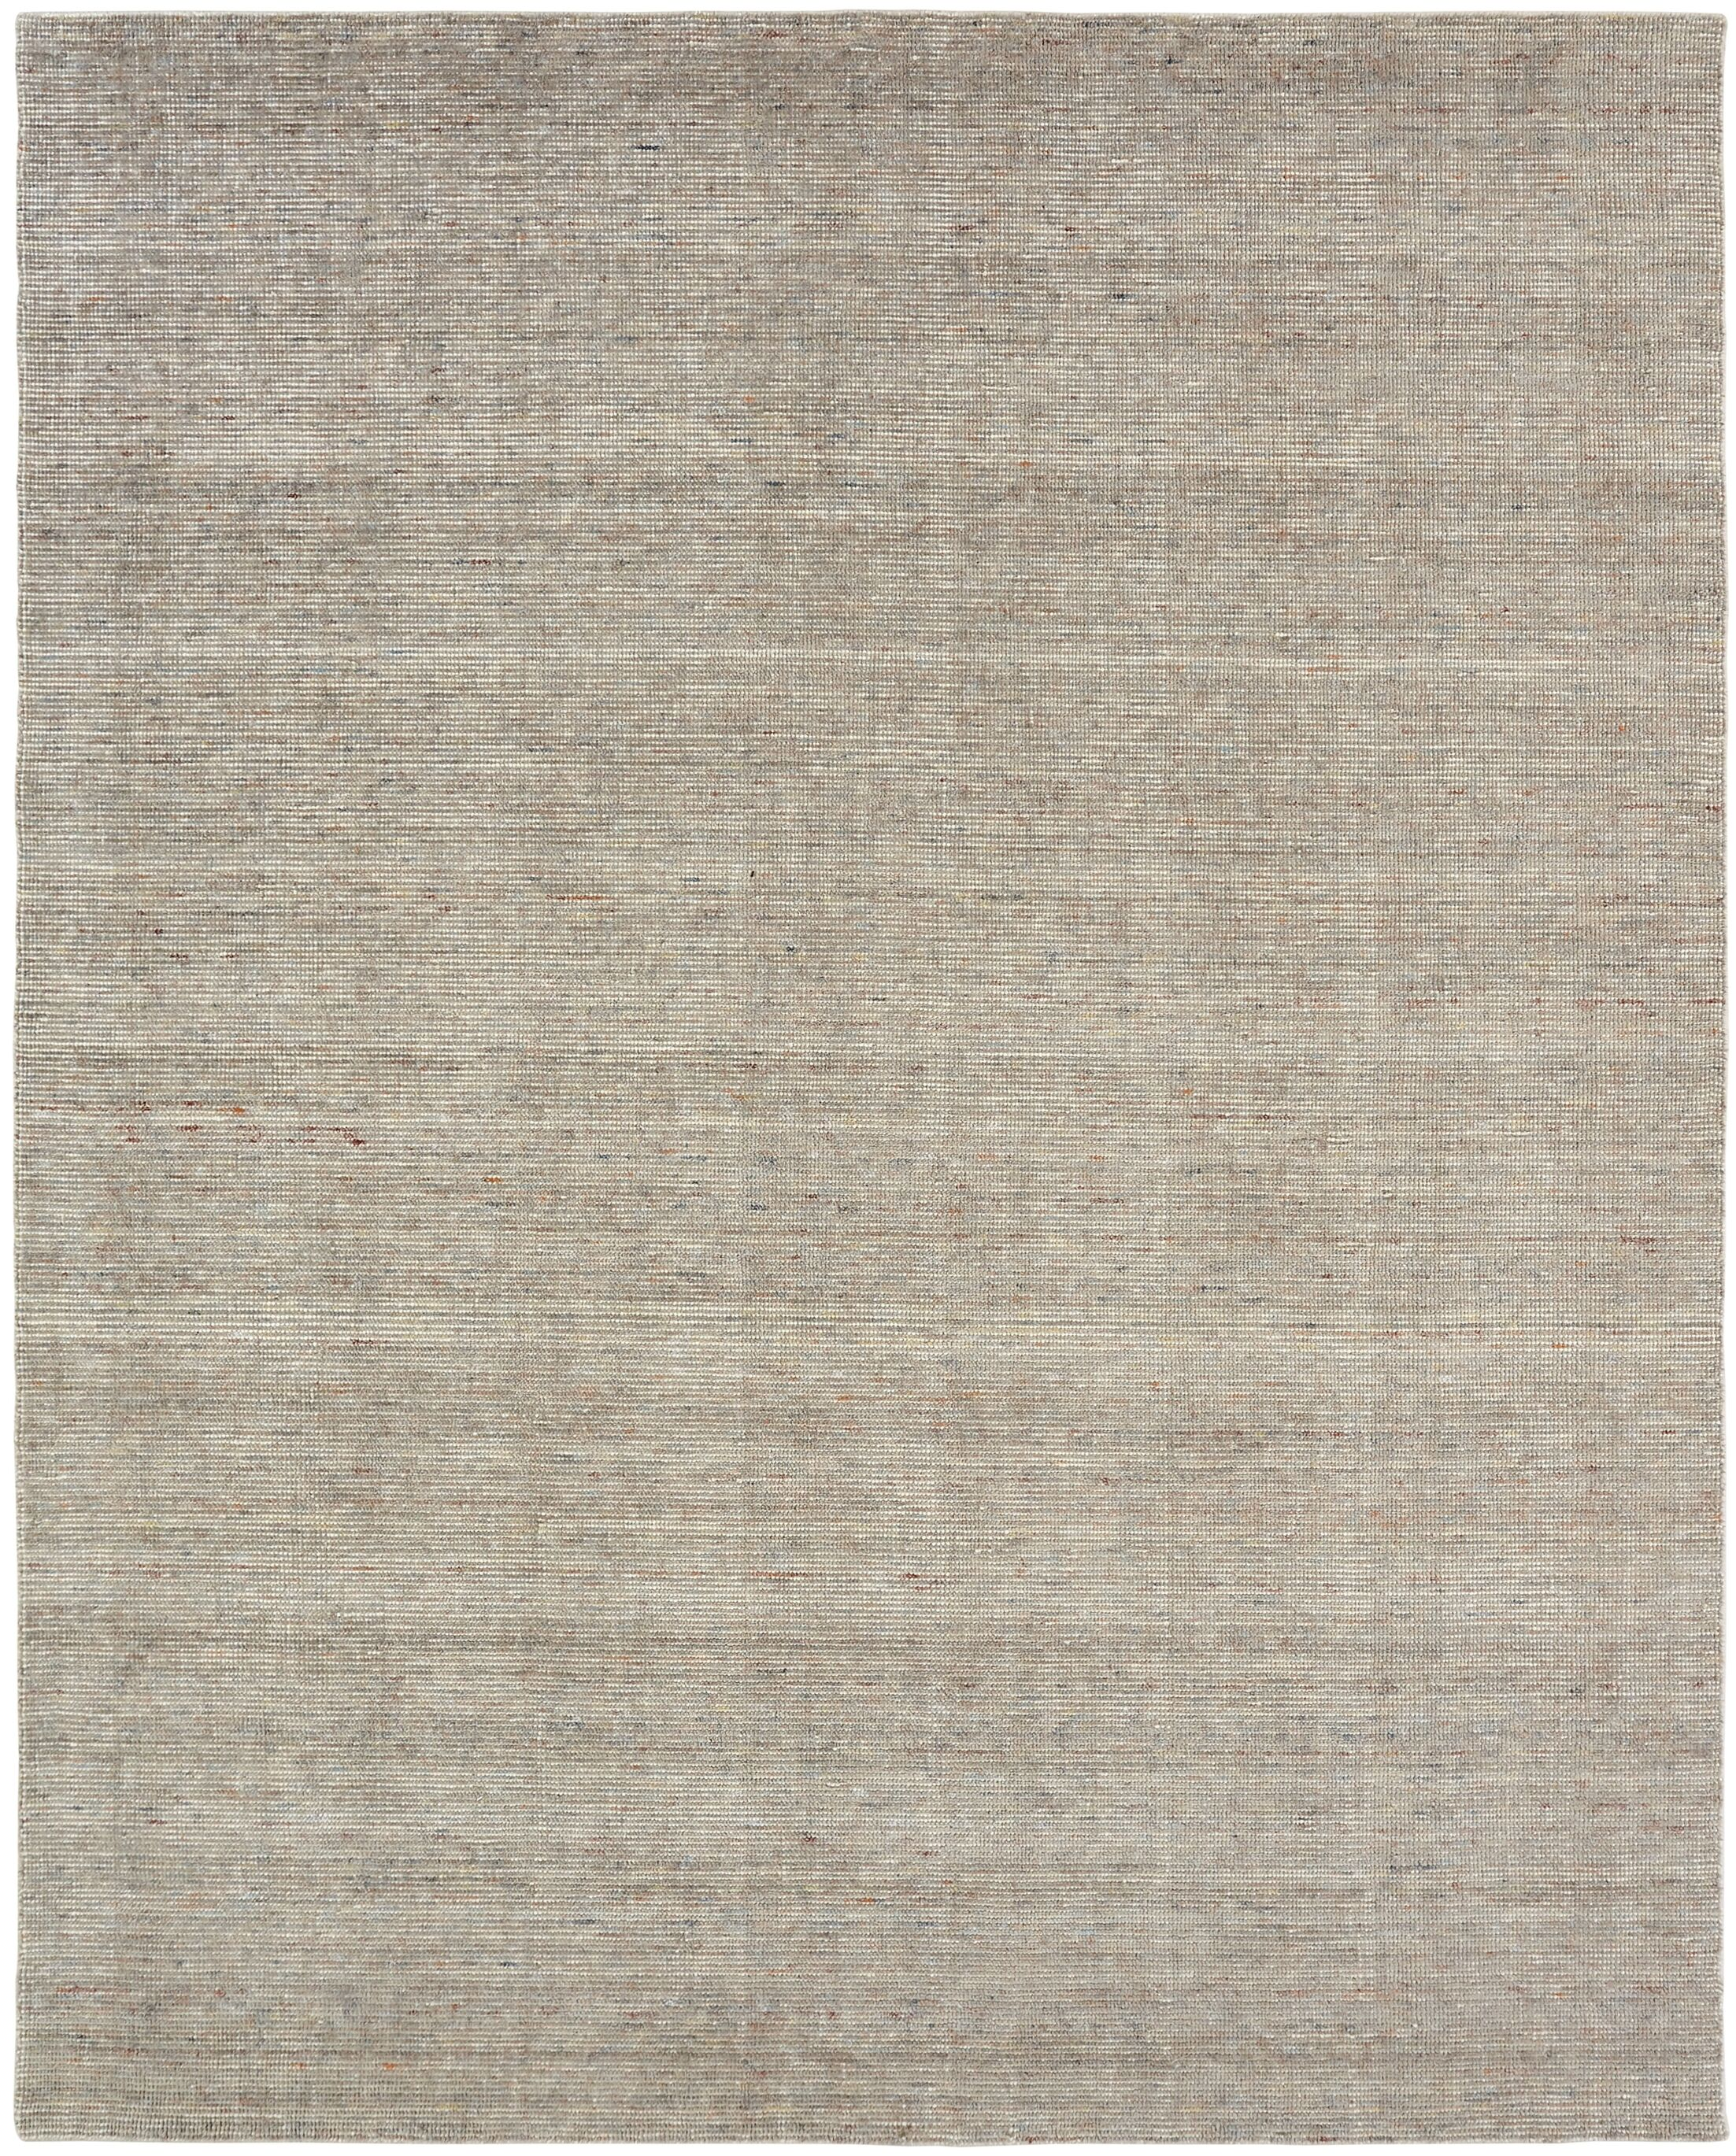 Beckner Hand-Hooked Beige Area Rug Rug Size: Rectangle 12' x 15'